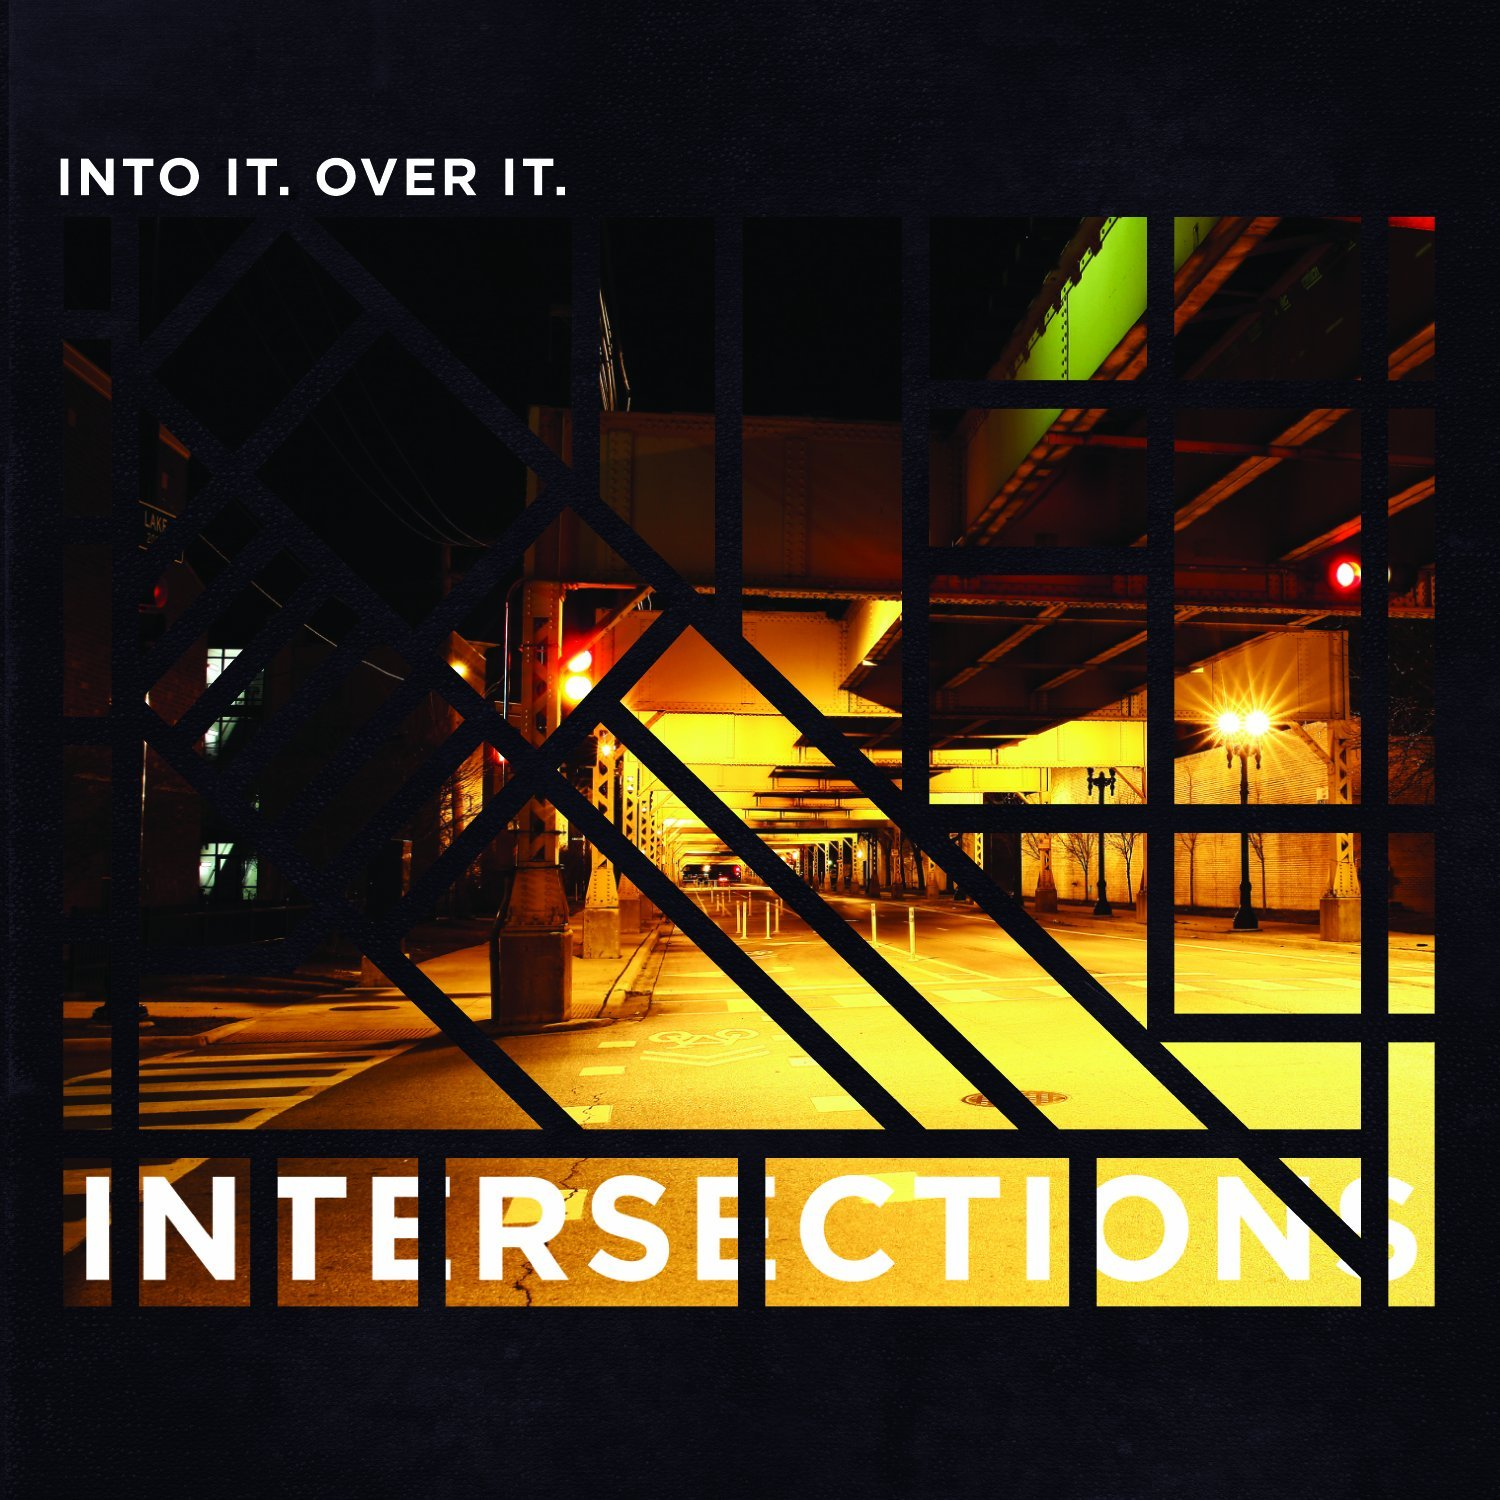 Into It. Over It. Intersections Vinyl